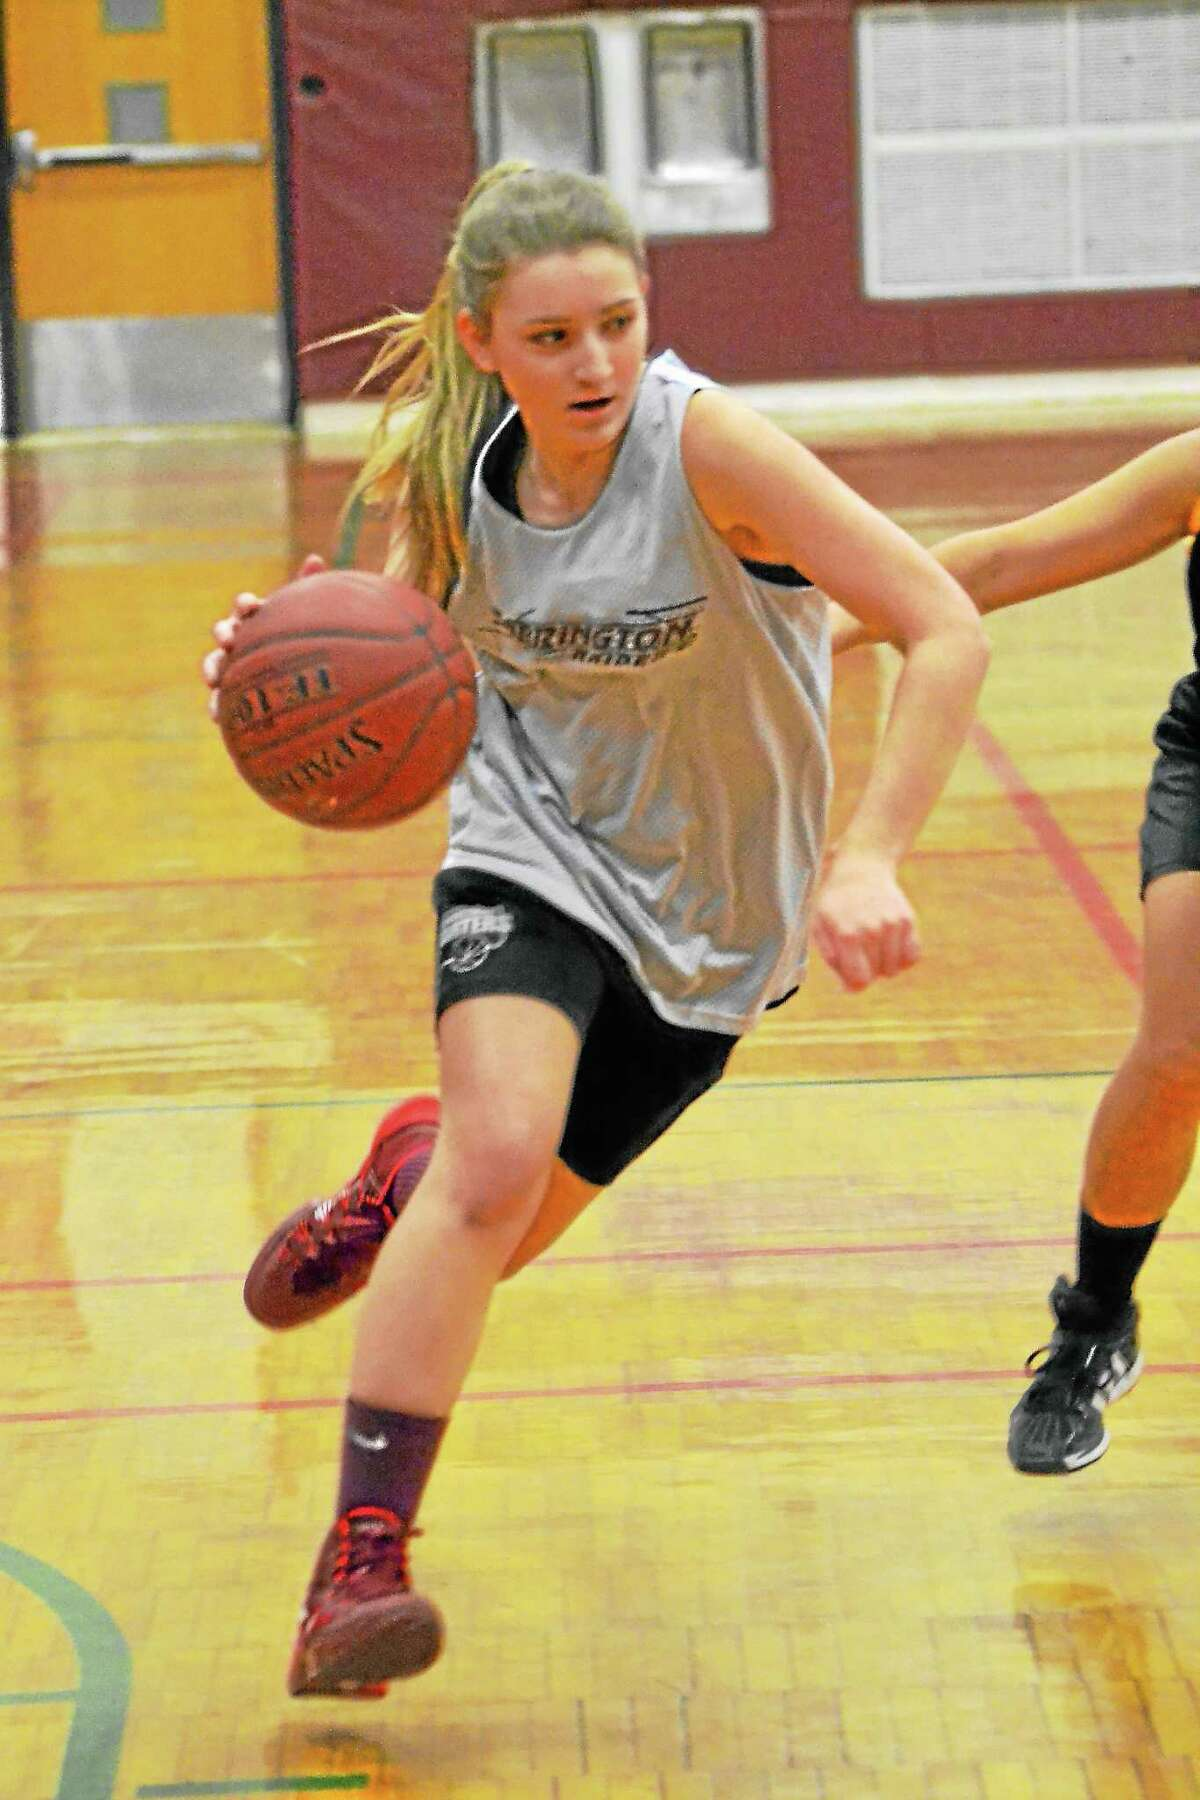 Torrington's Caroline Teti is the Red Raiders' returning leading scoring with 11.6 points-per-game last season as a junior. She also had 82 assists last and shot 71% from the free throw line.